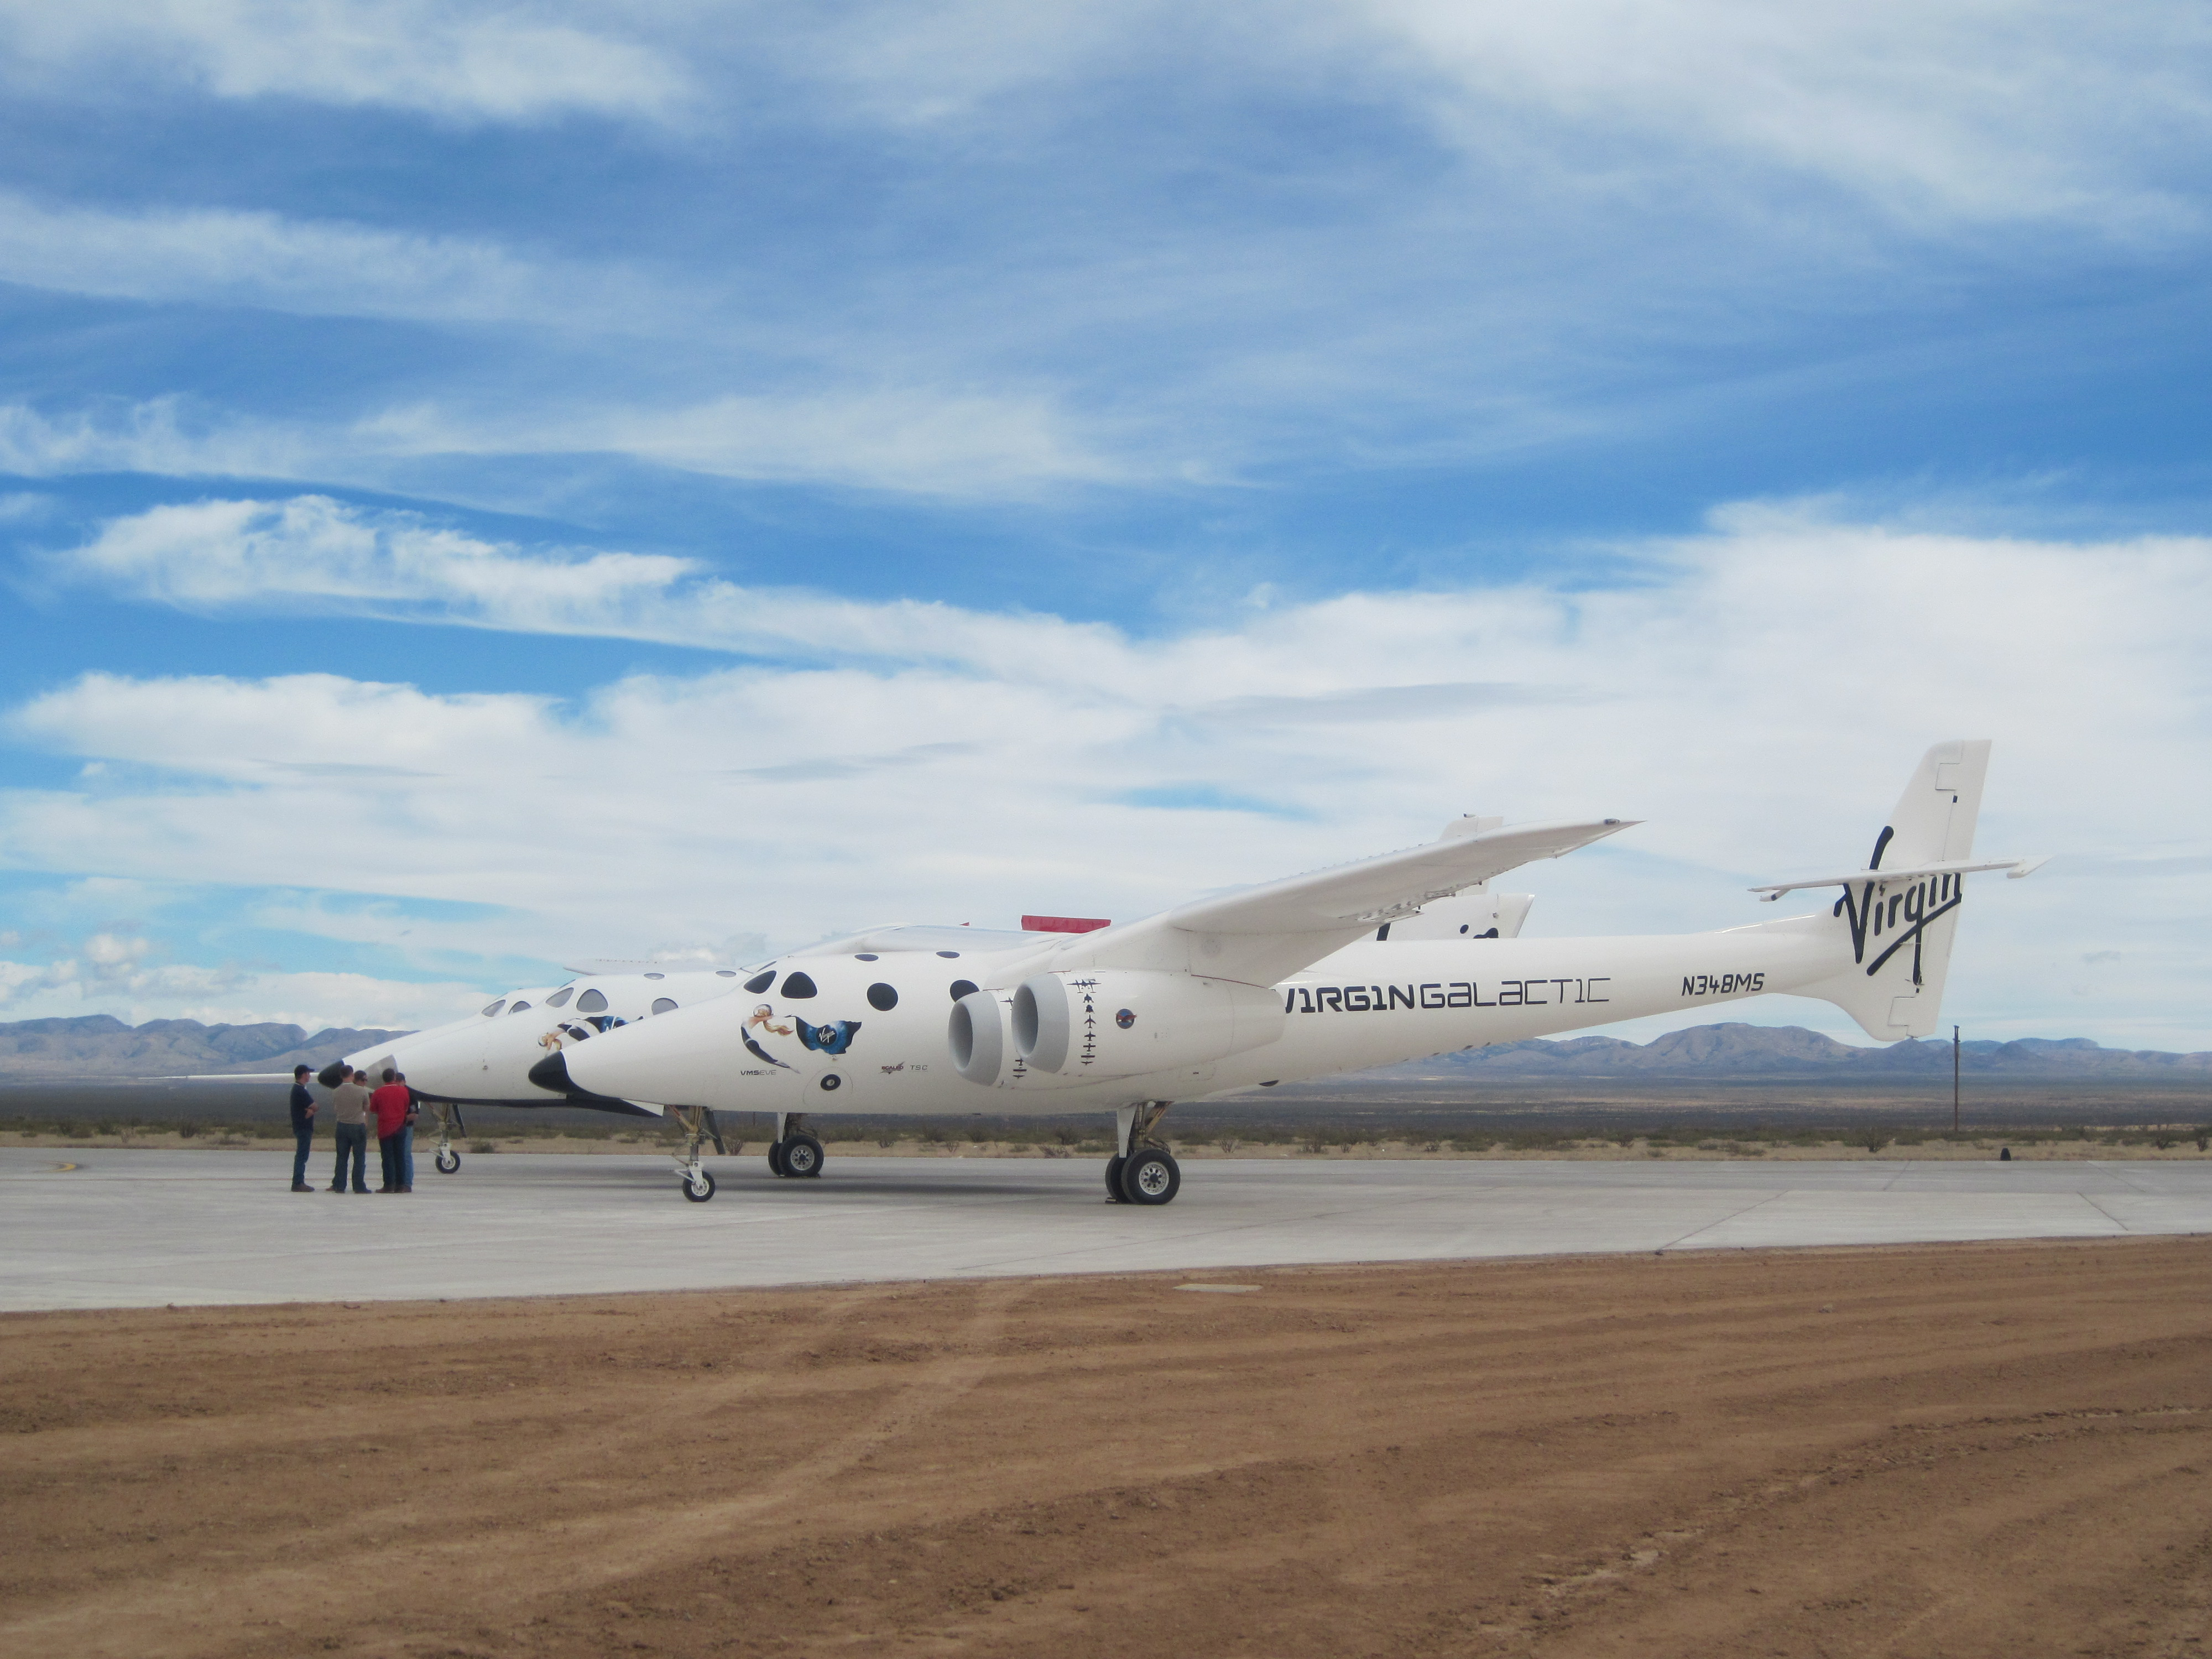 SpaceShipTwo on the New Runway at Spaceport America